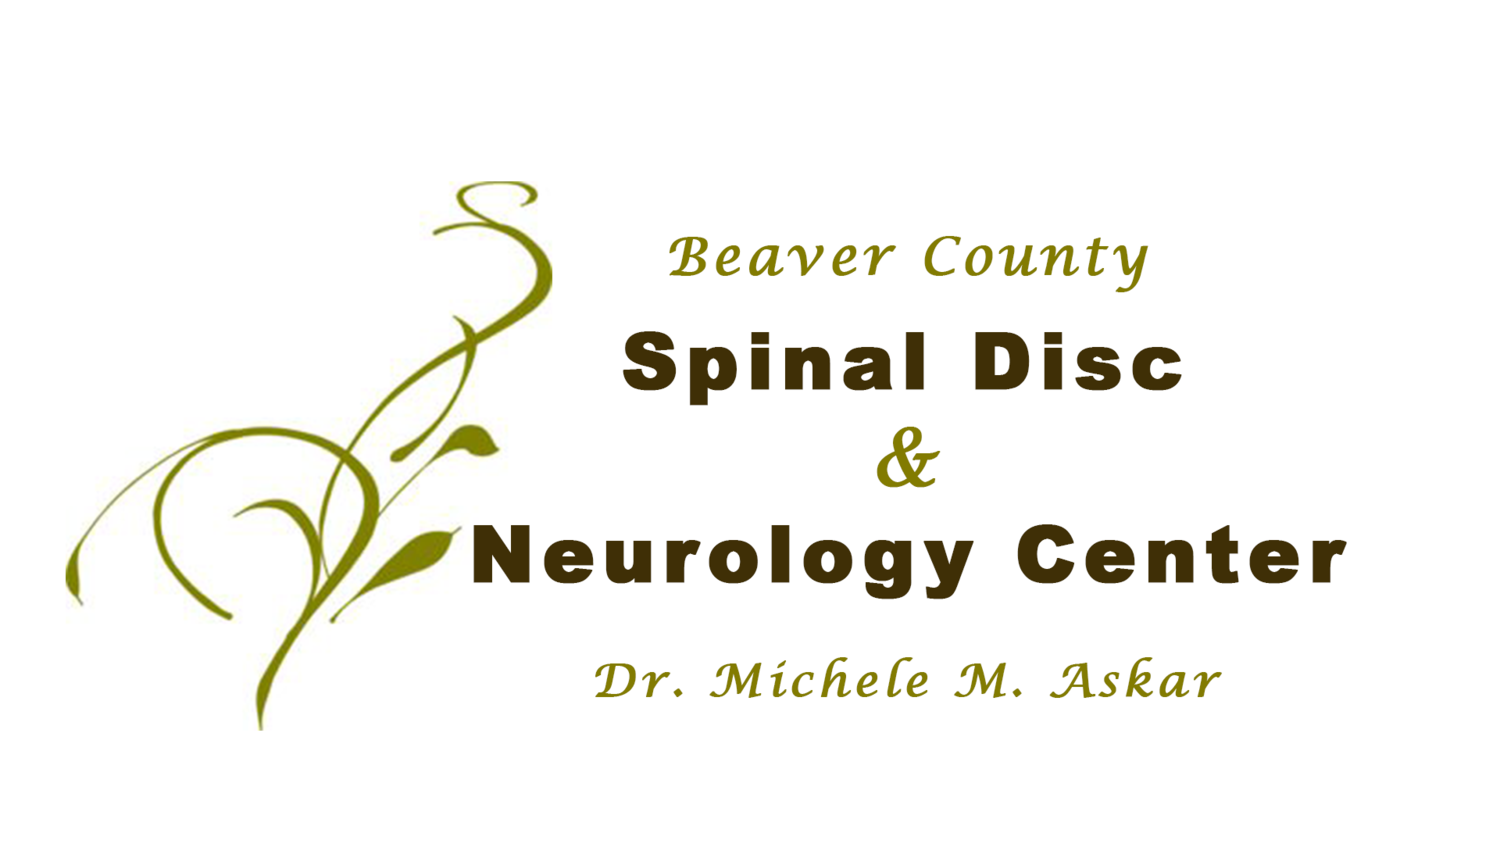 Beaver County Spinal Disc &  Neurology Center